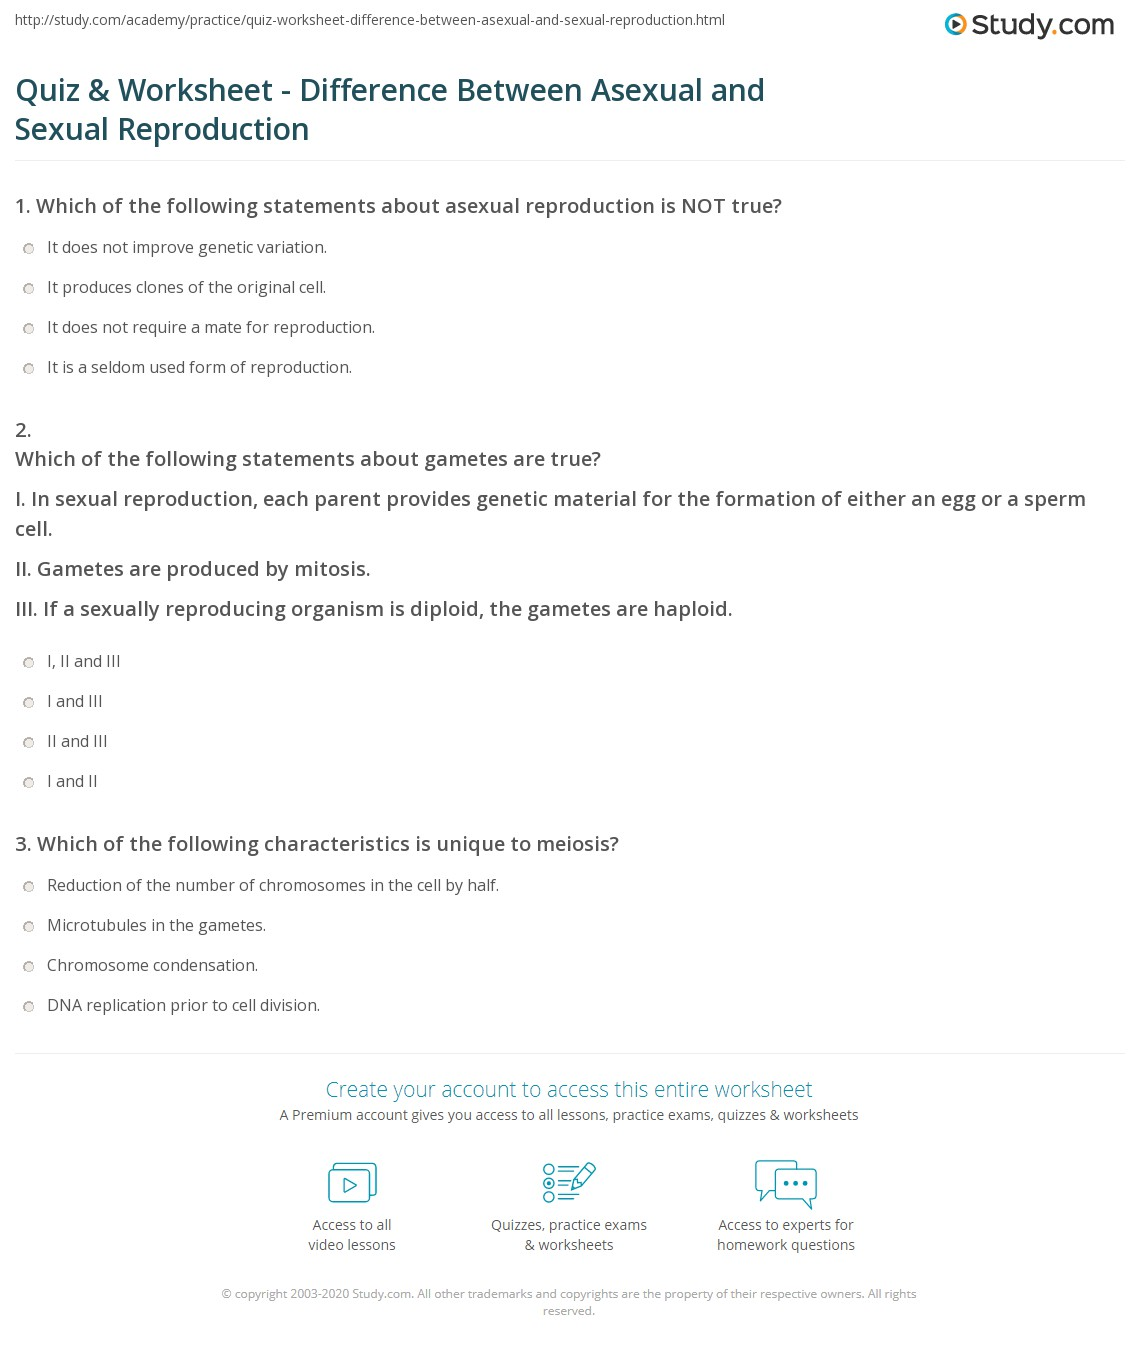 Difference between sexual and asexual propagation